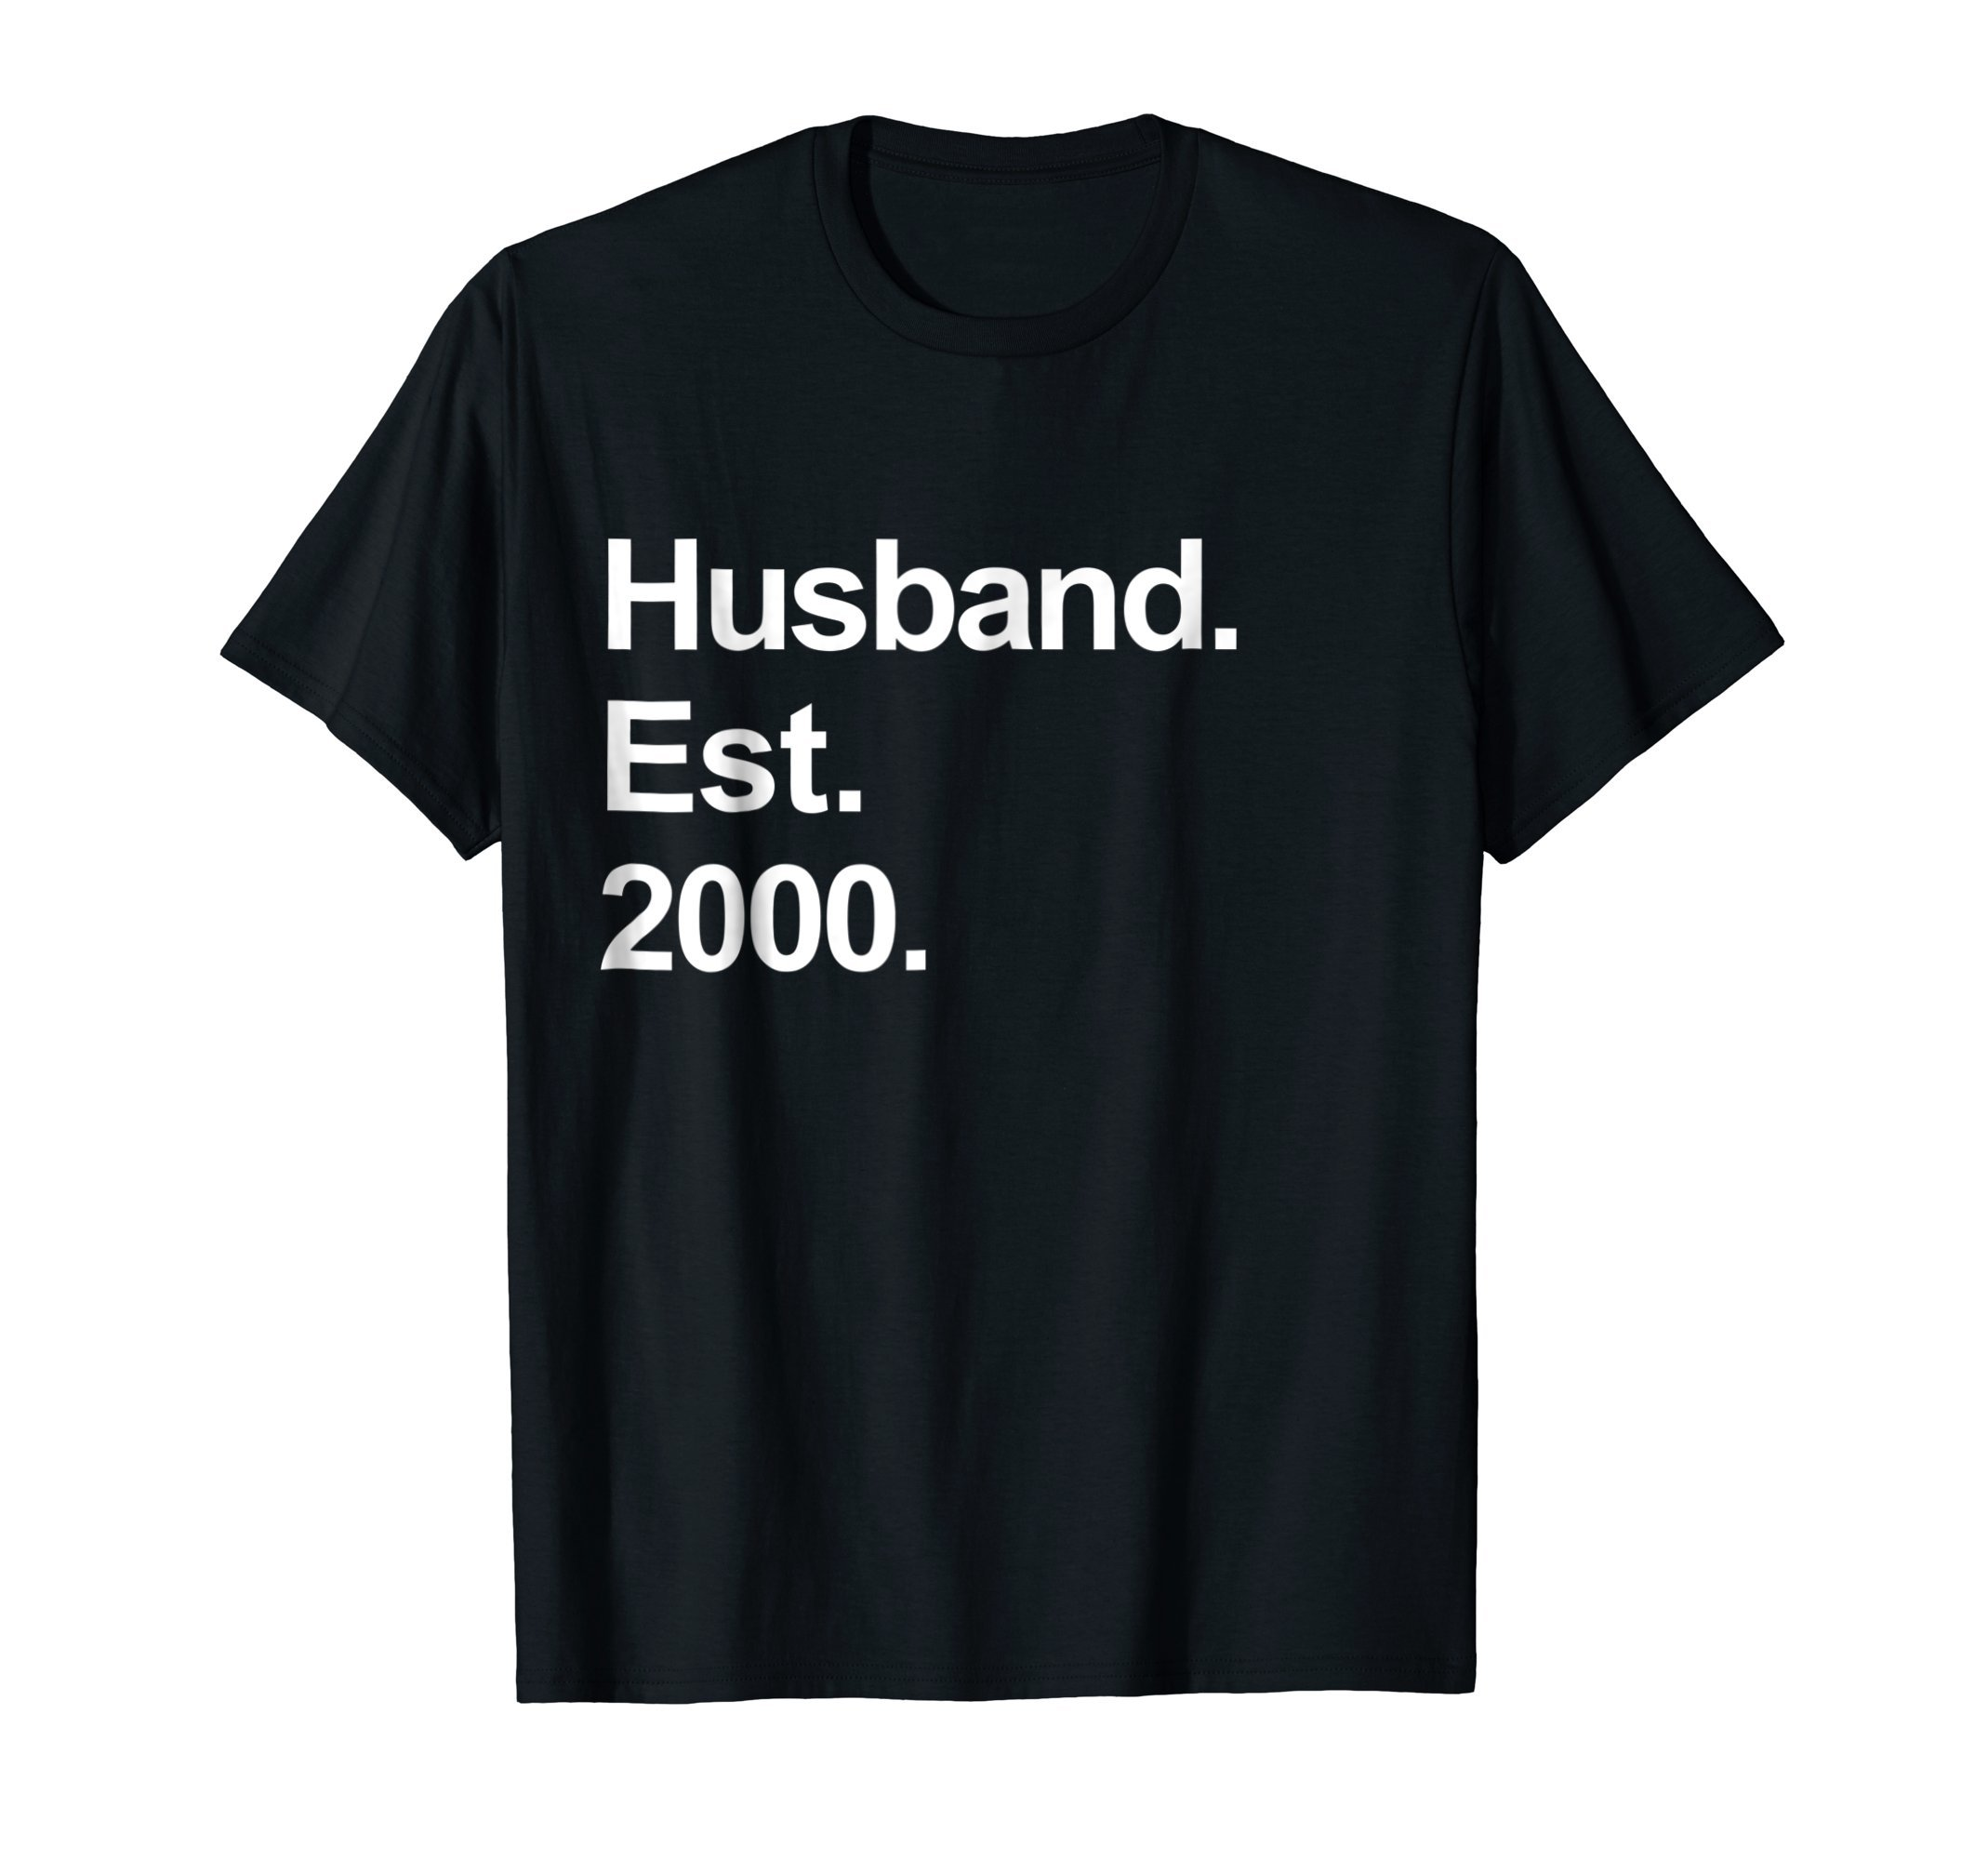 Mens 18th Wedding Anniversary Gifts - Husband Est 2000 Shirt by Awesome Husband and Wife Wedding Couples Shirts (Image #1)